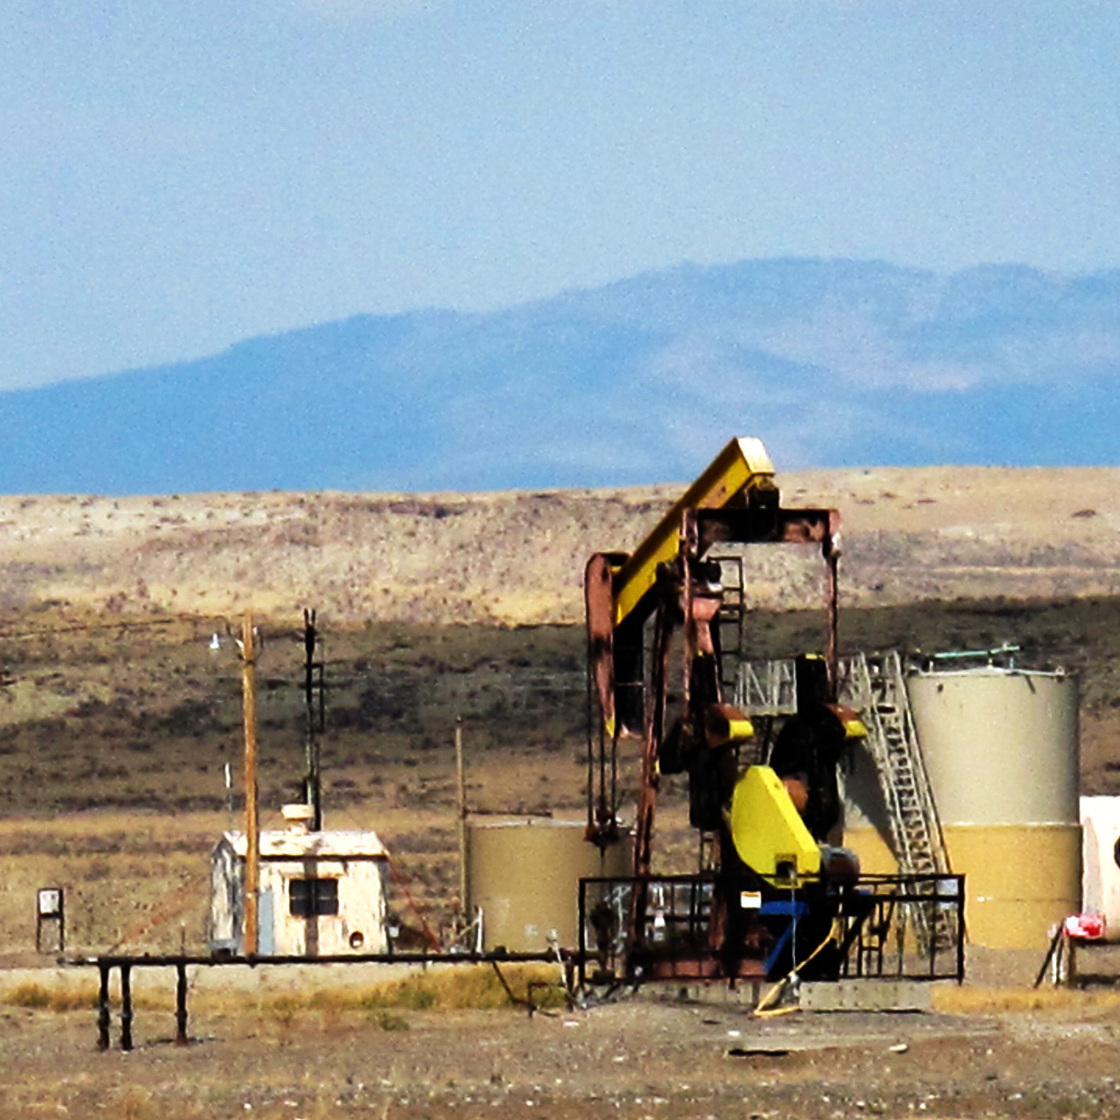 In most oil fields, the water that companies pump up with the oil gets reinjected deep underground. But the federal government allows a dozen oil fields on the Wind River Reservation in Wyoming to pump streams of this wastewater onto the land.